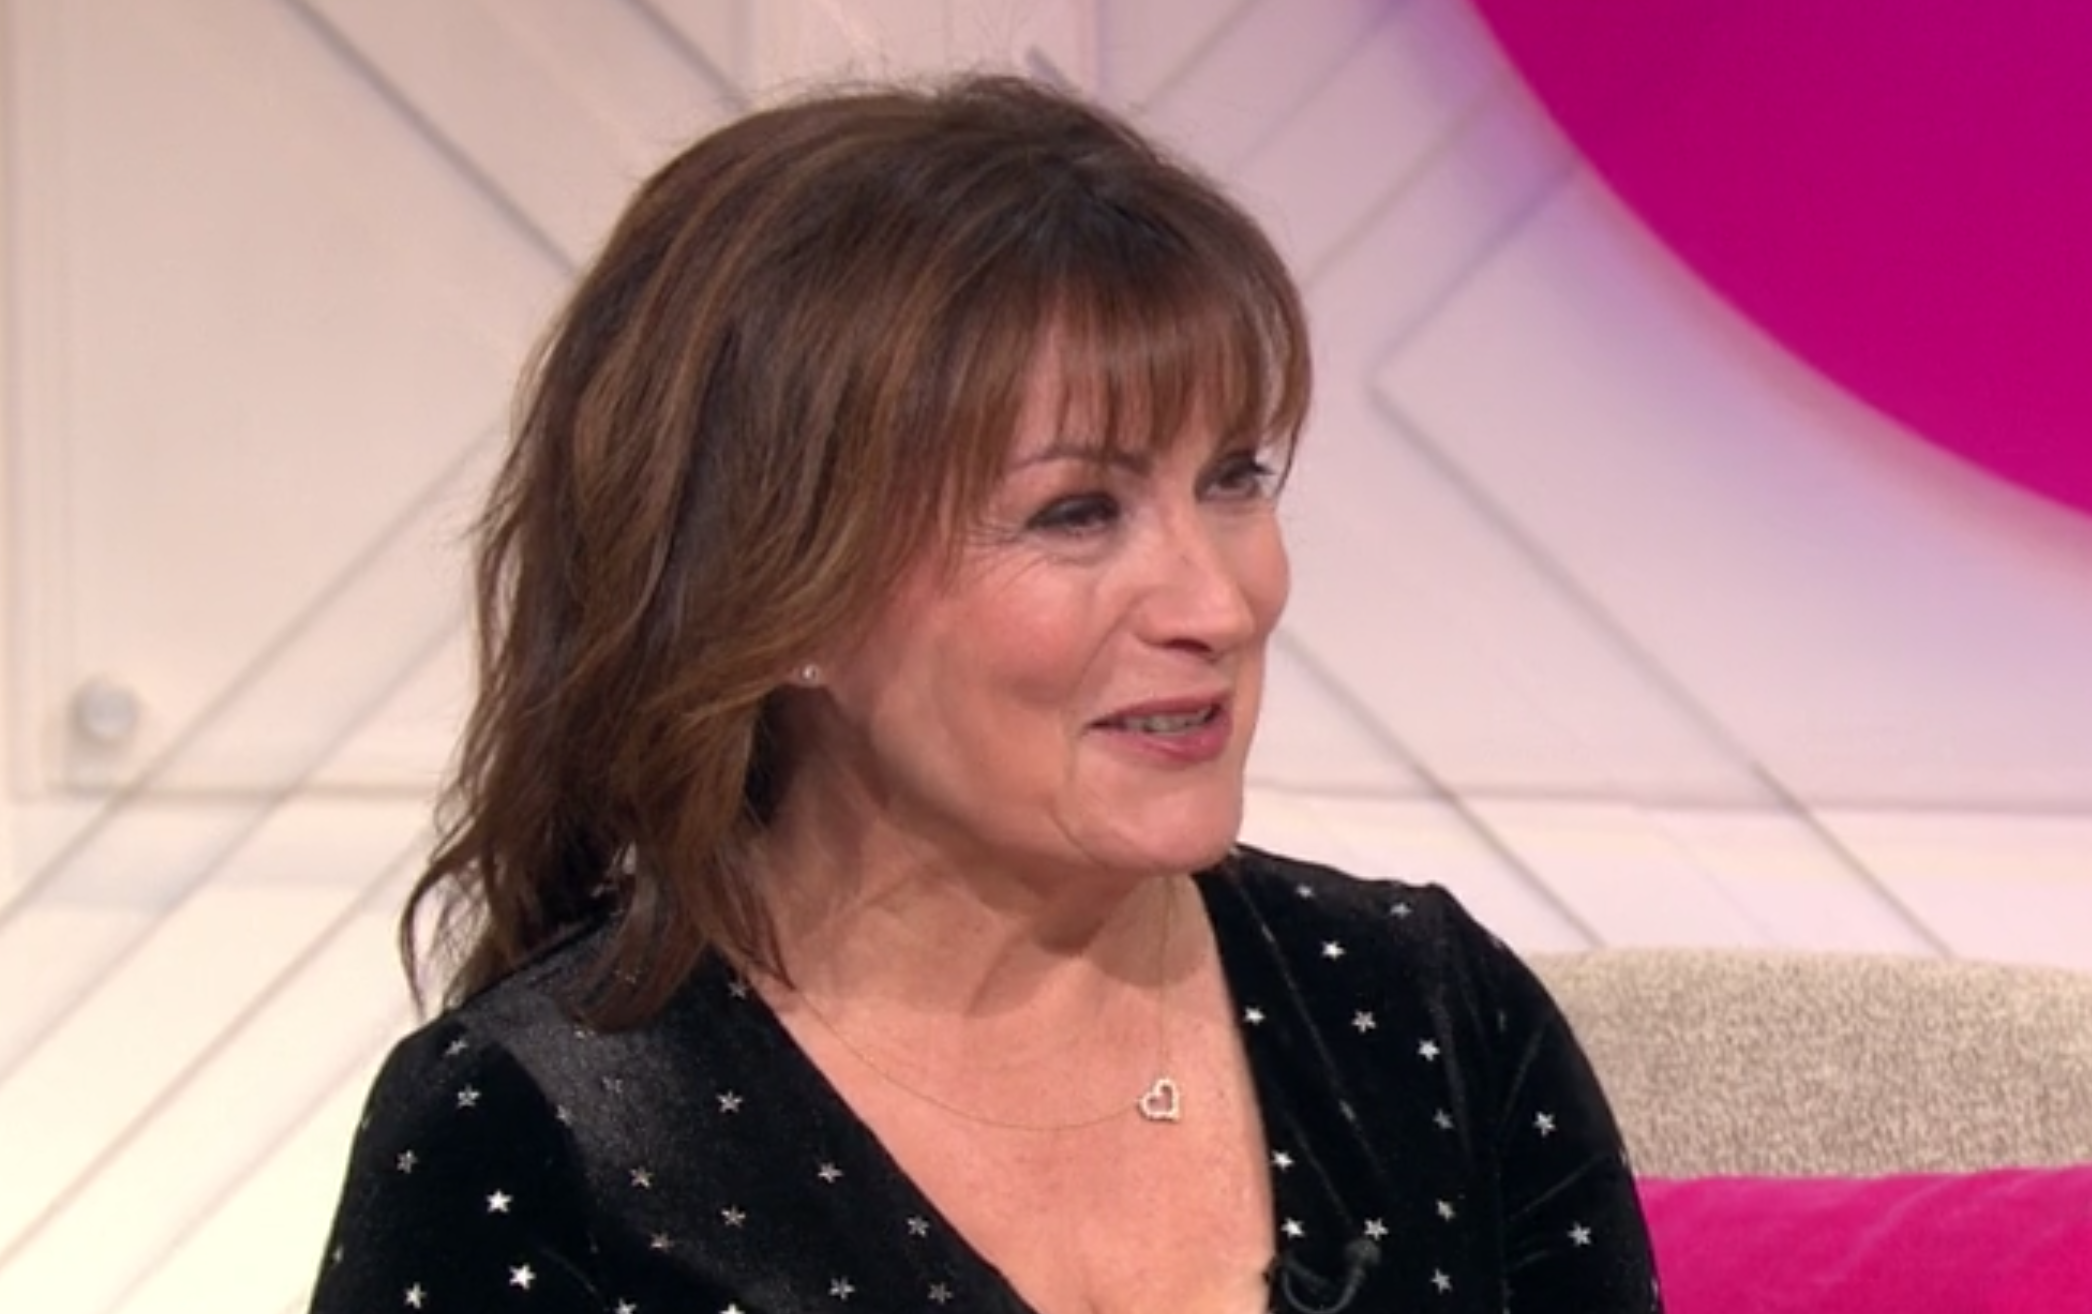 Lorraine breaks her silence on Phillip Schofield as she praises him for DOI appearance